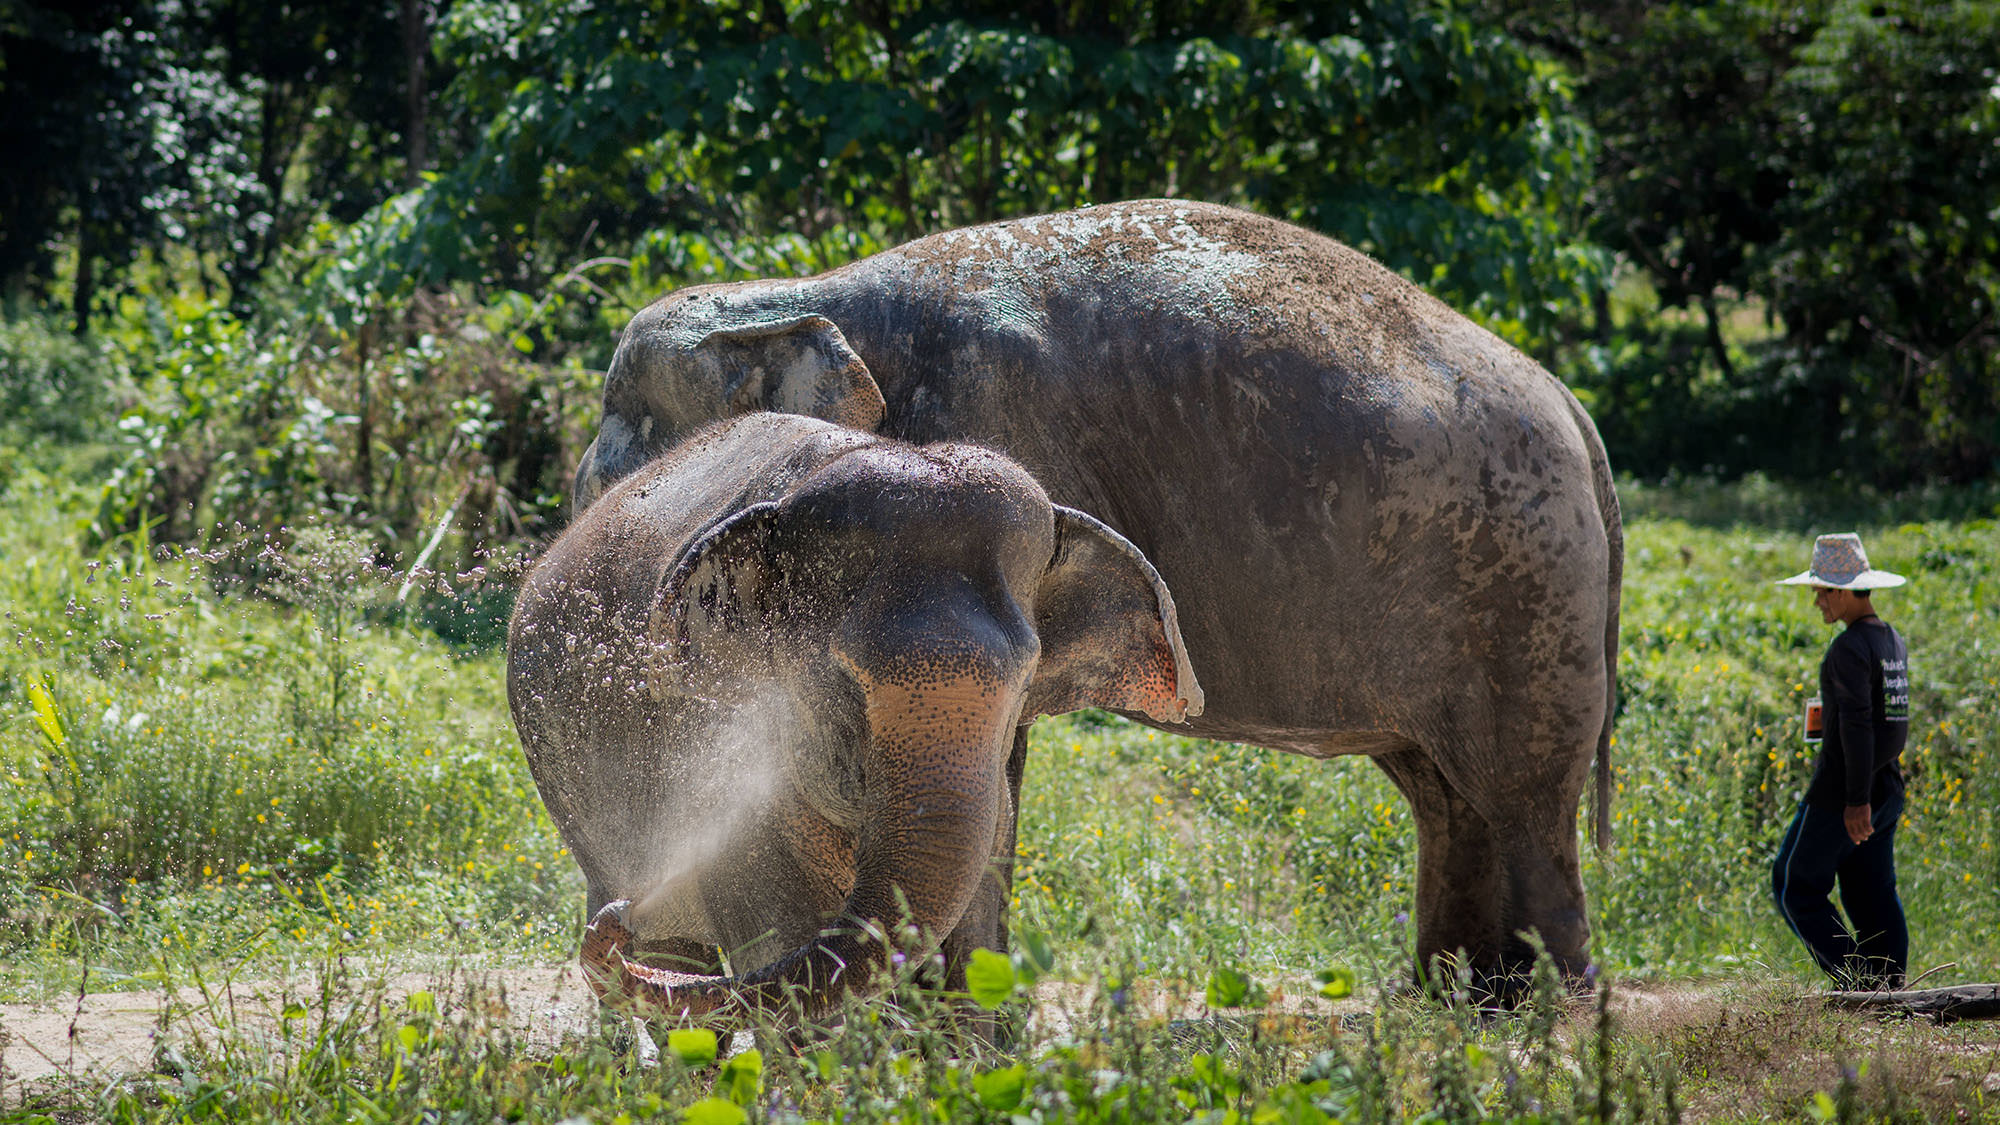 PHUKET'S <br> FIRST ETHICAL <br> ELEPHANT SANCTUARY